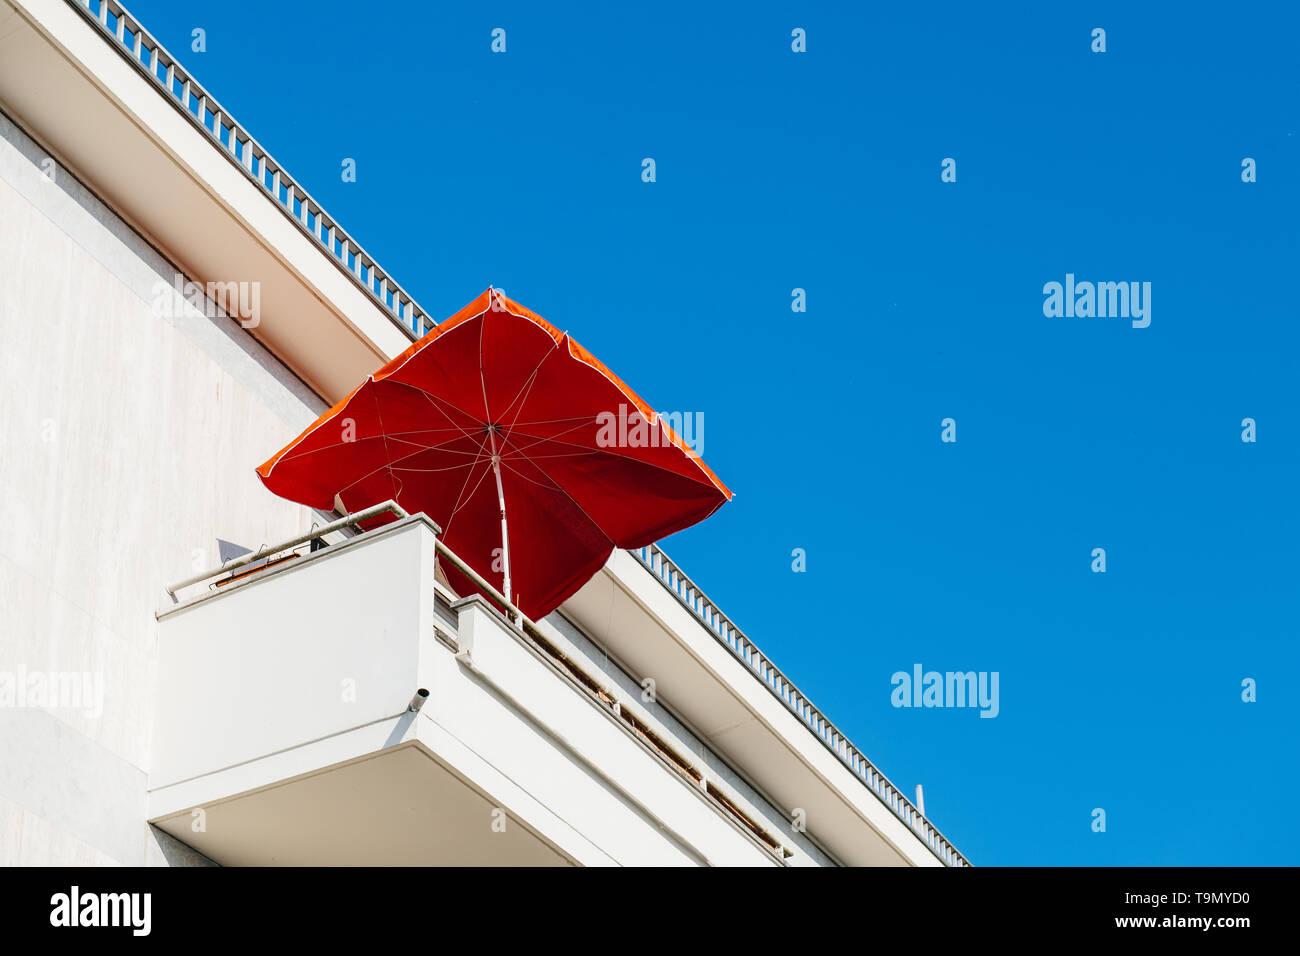 View from below of white modern balcony with red sunshade umbrella at a luxury real estate penthouse-apartment building - Stock Image